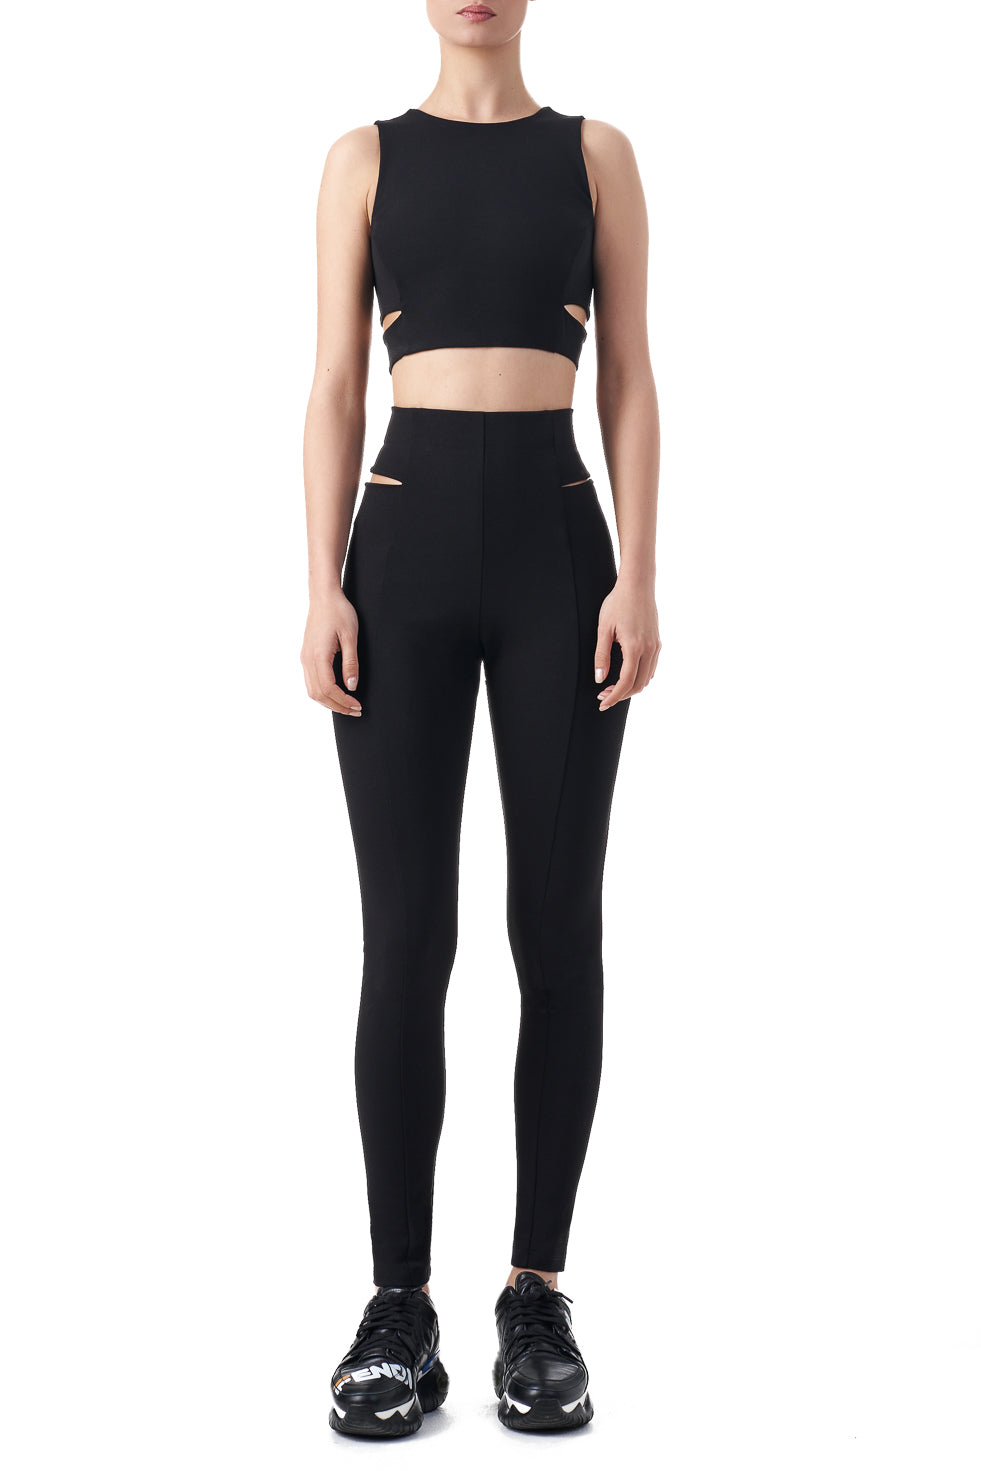 Deborah Black high cut out detailed yoga leggings